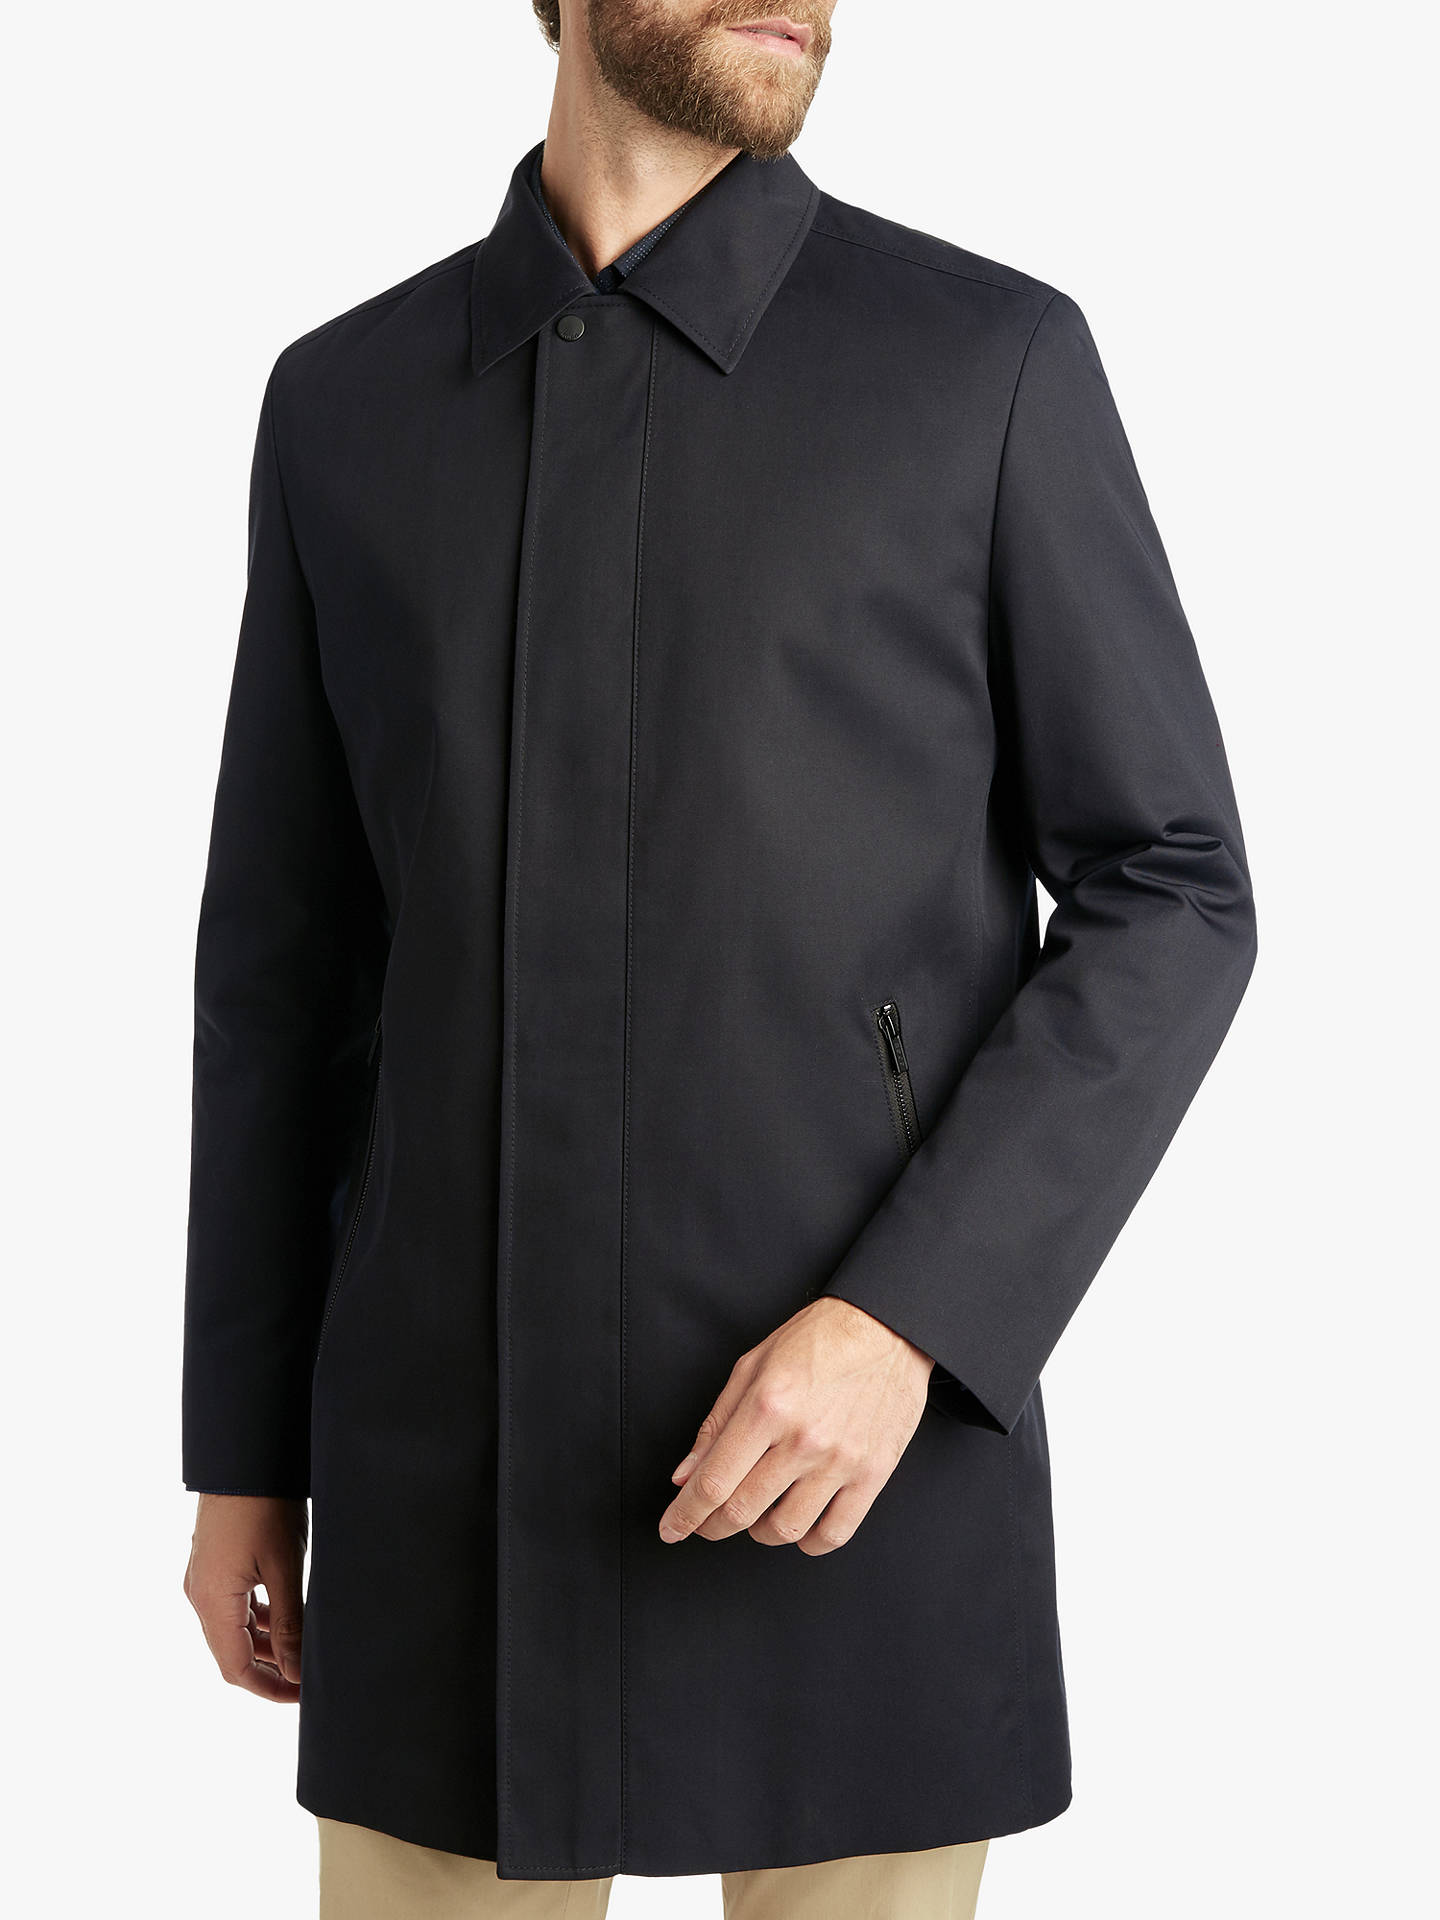 a201e7fab Buy HUGO by Hugo Boss Marec Water Repellent Tailored Mac, Black, 36R Online  at ...